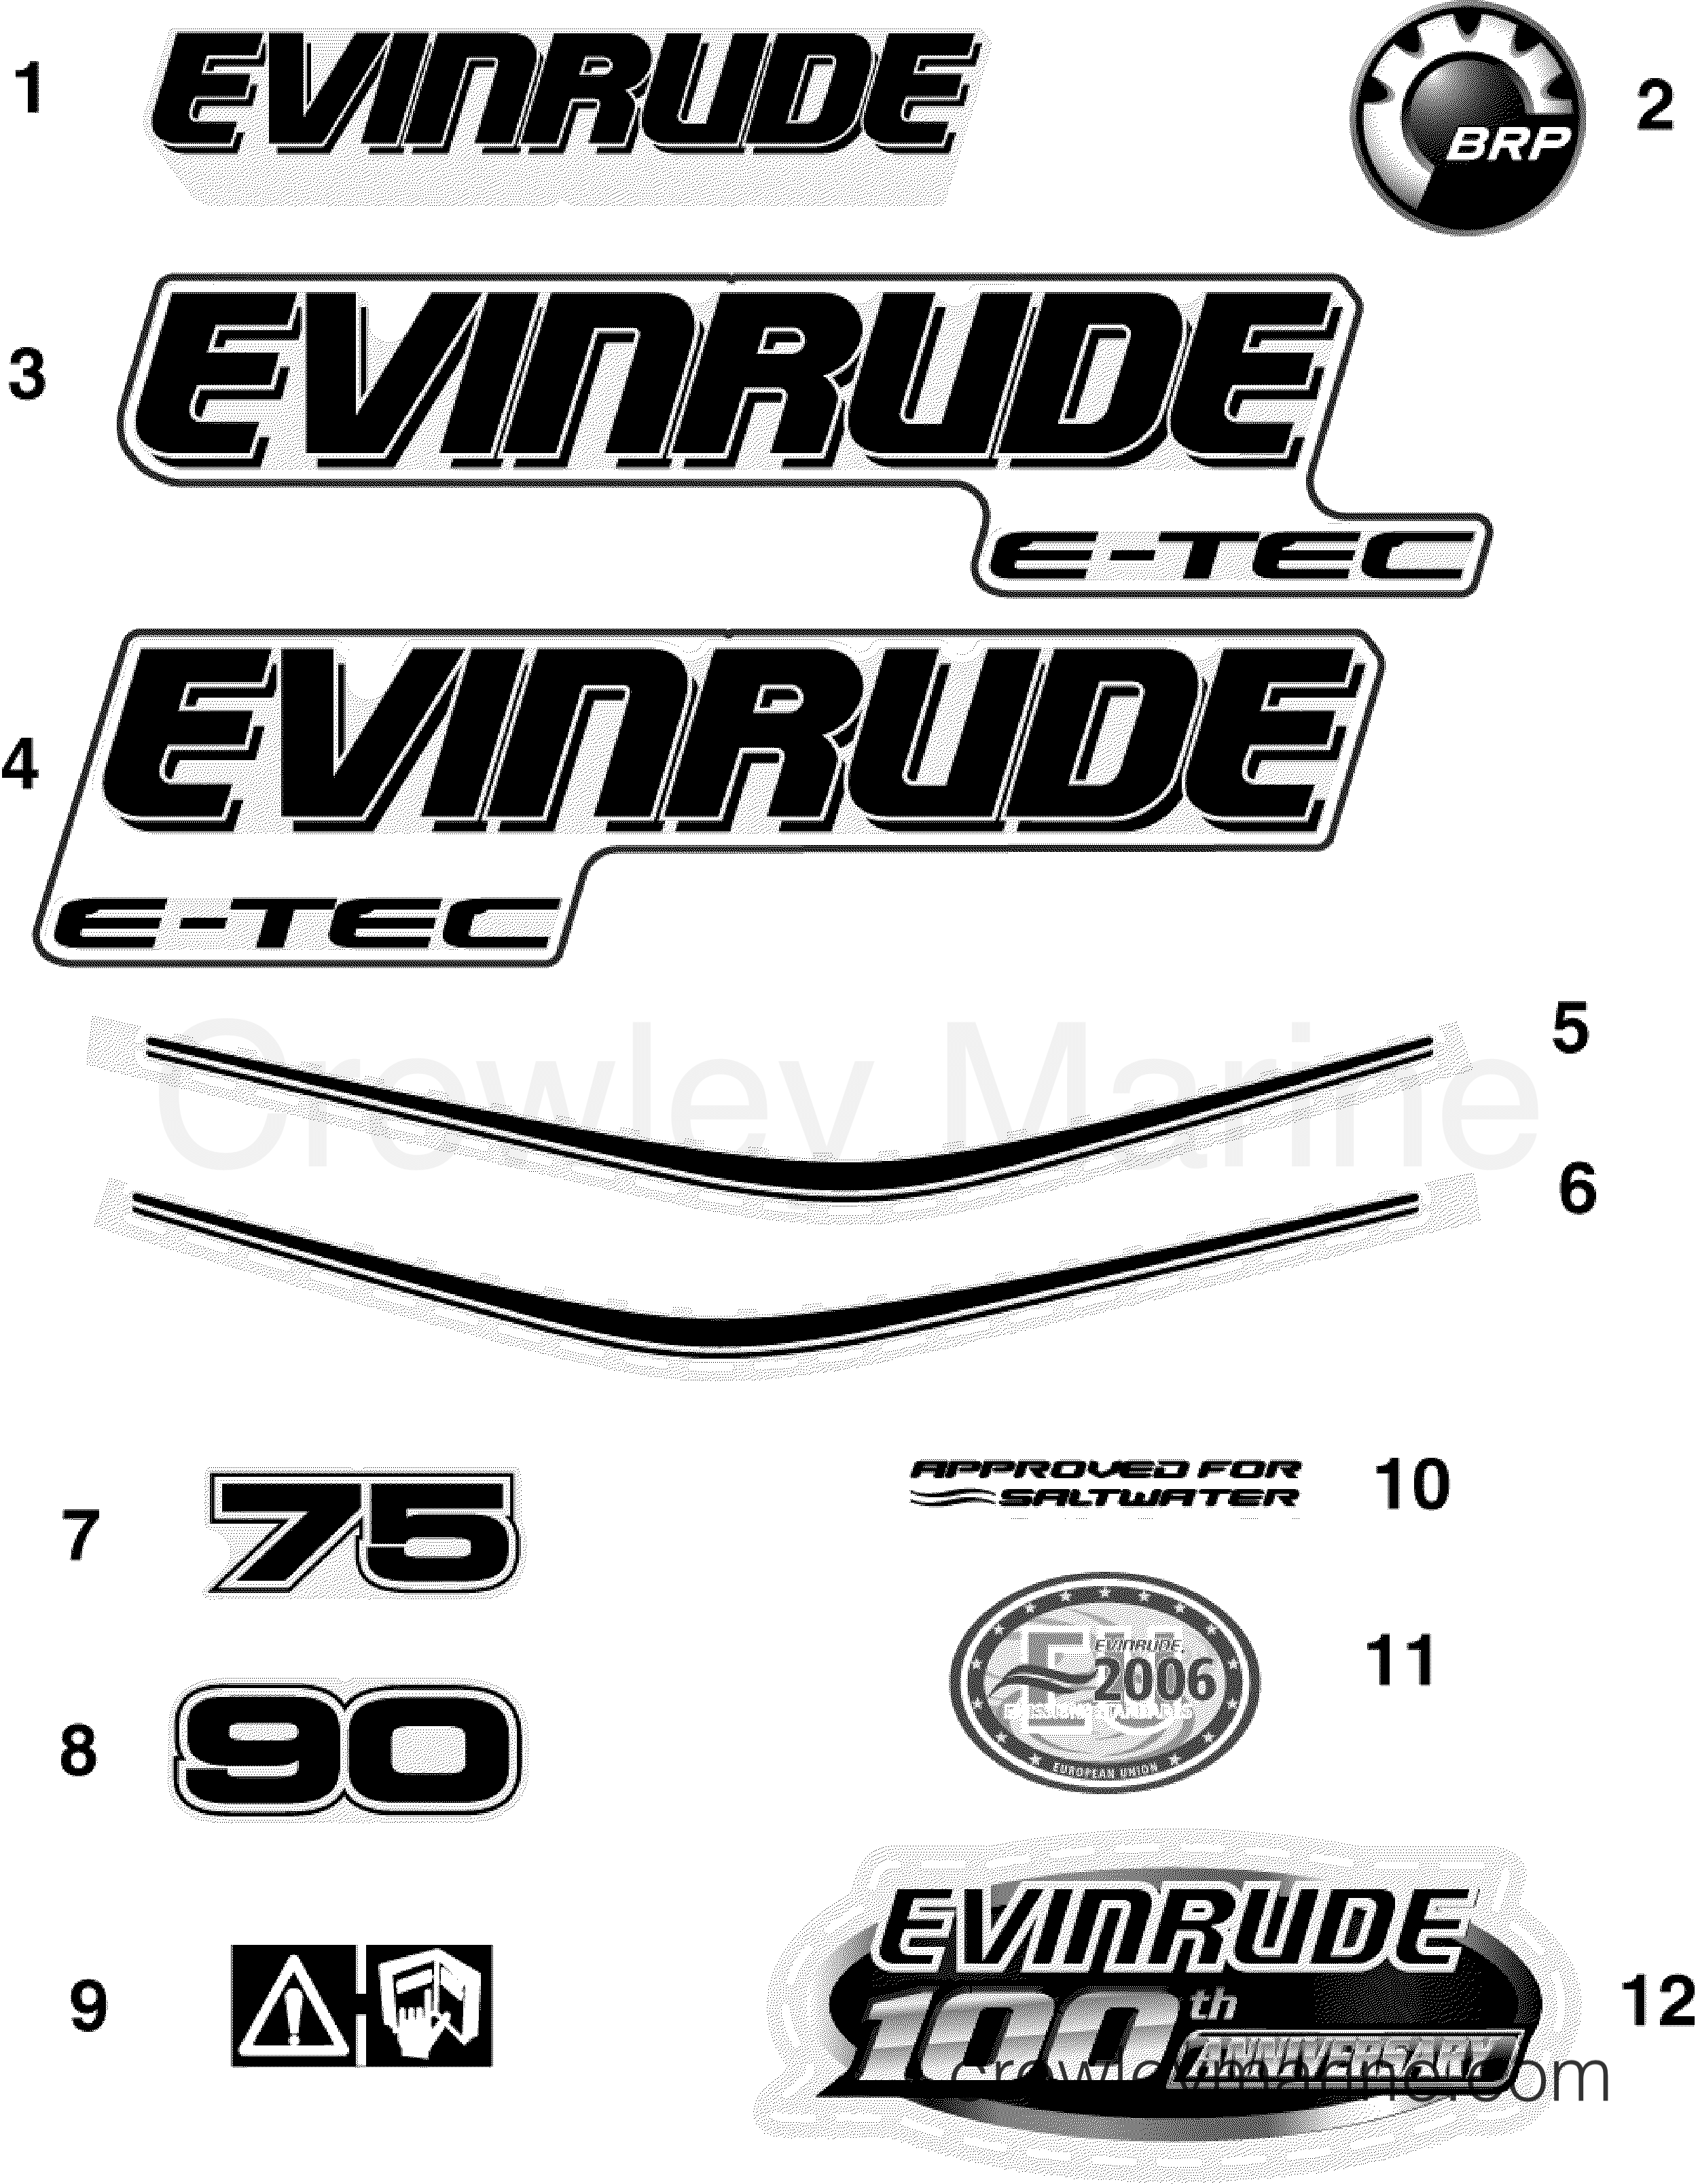 2009 Evinrude Outboards 75 - E75DSLSEC DECALS section